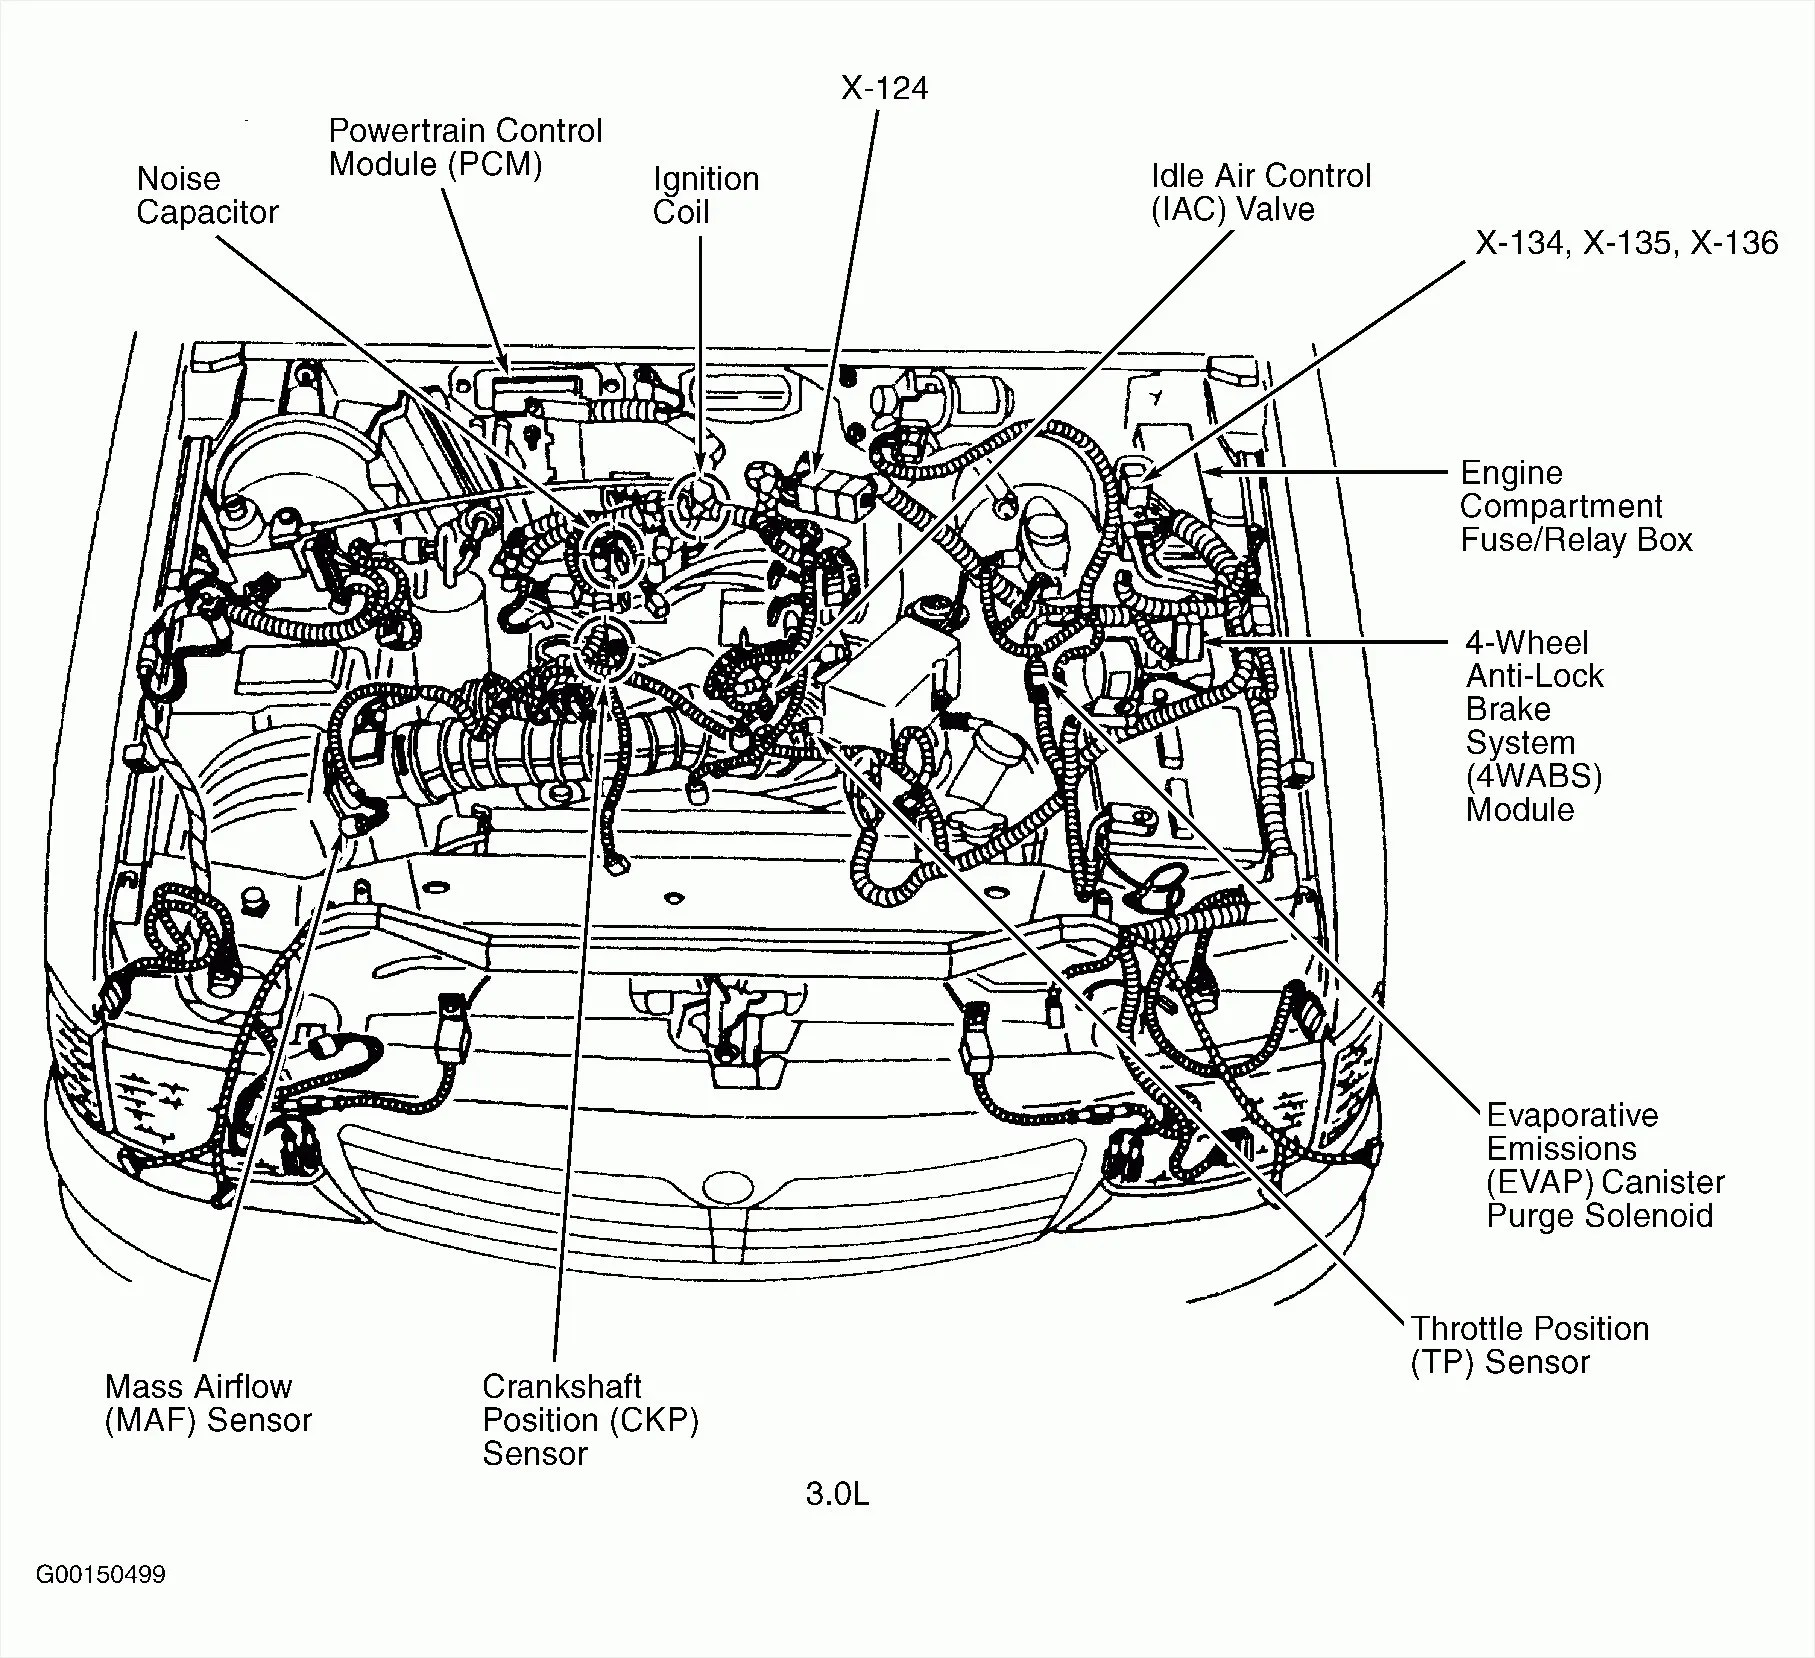 hight resolution of mazda e2000 wiring diagram wiring diagram week 2004 mazda e2000 radio wiring diagram mazda e2000 wiring diagram